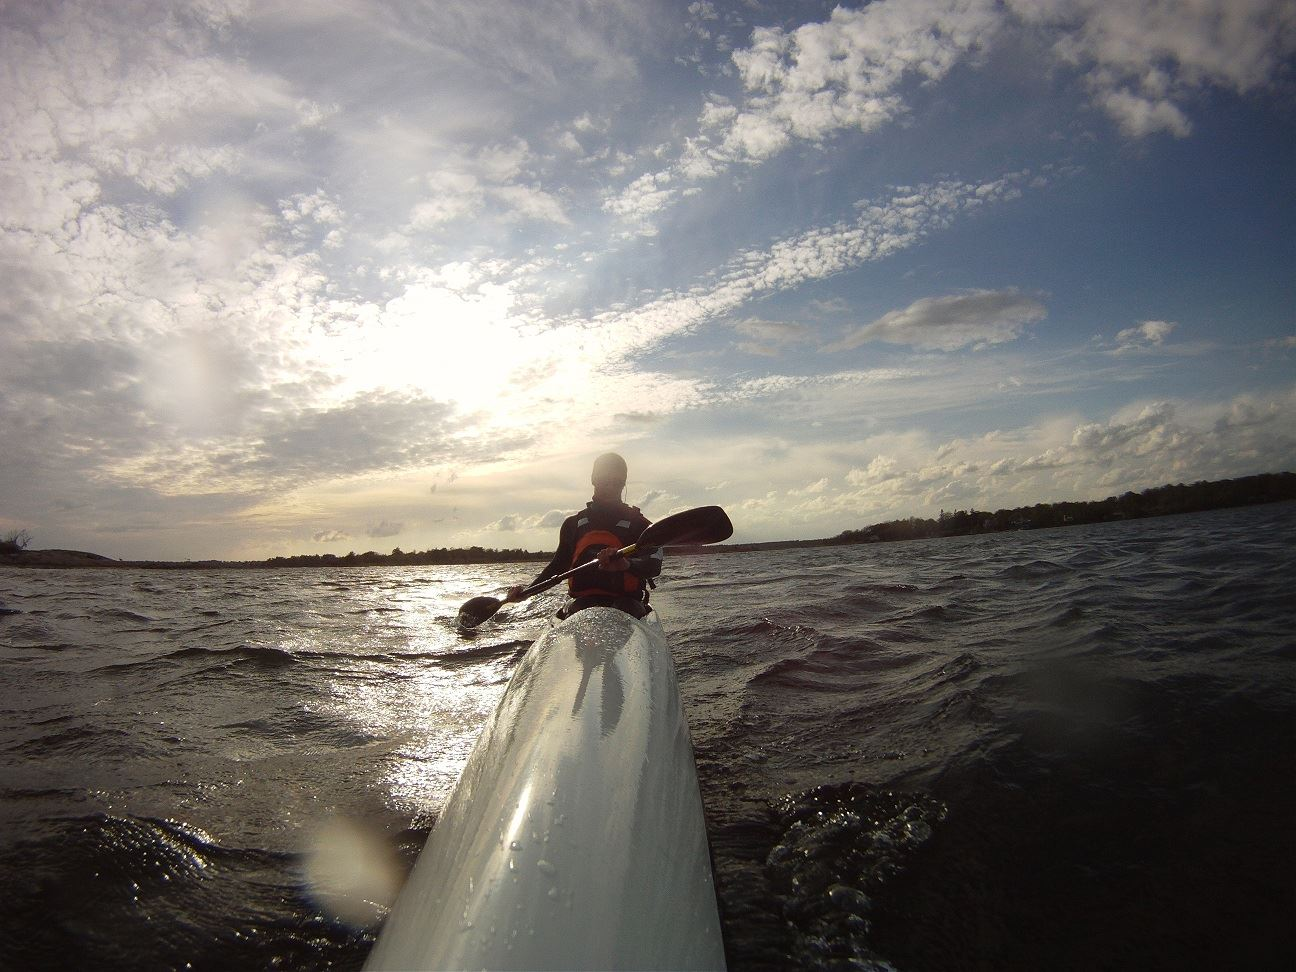 Test to kayak with a surfski in the small waves of archipelago of Karlskrona.